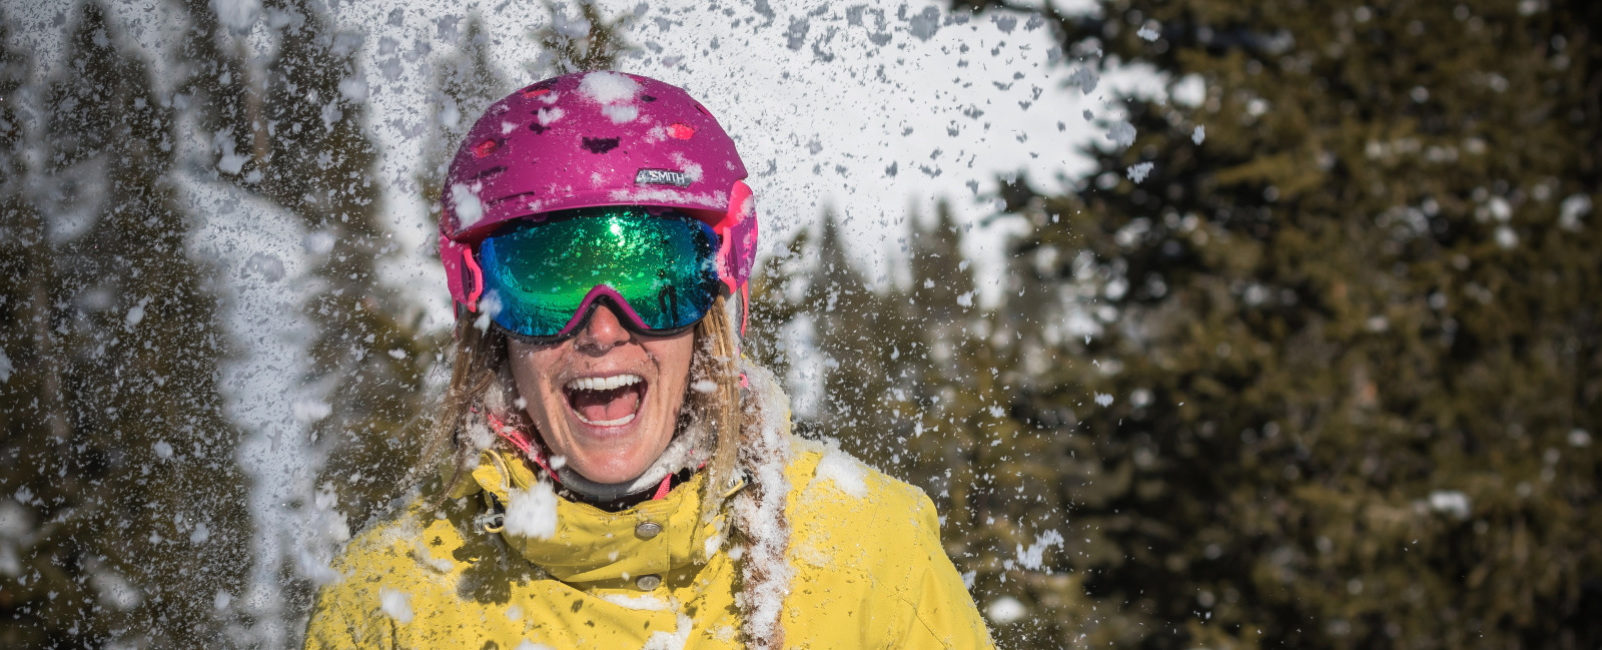 The Do's (and Do Not's) of Ski Goggle Care